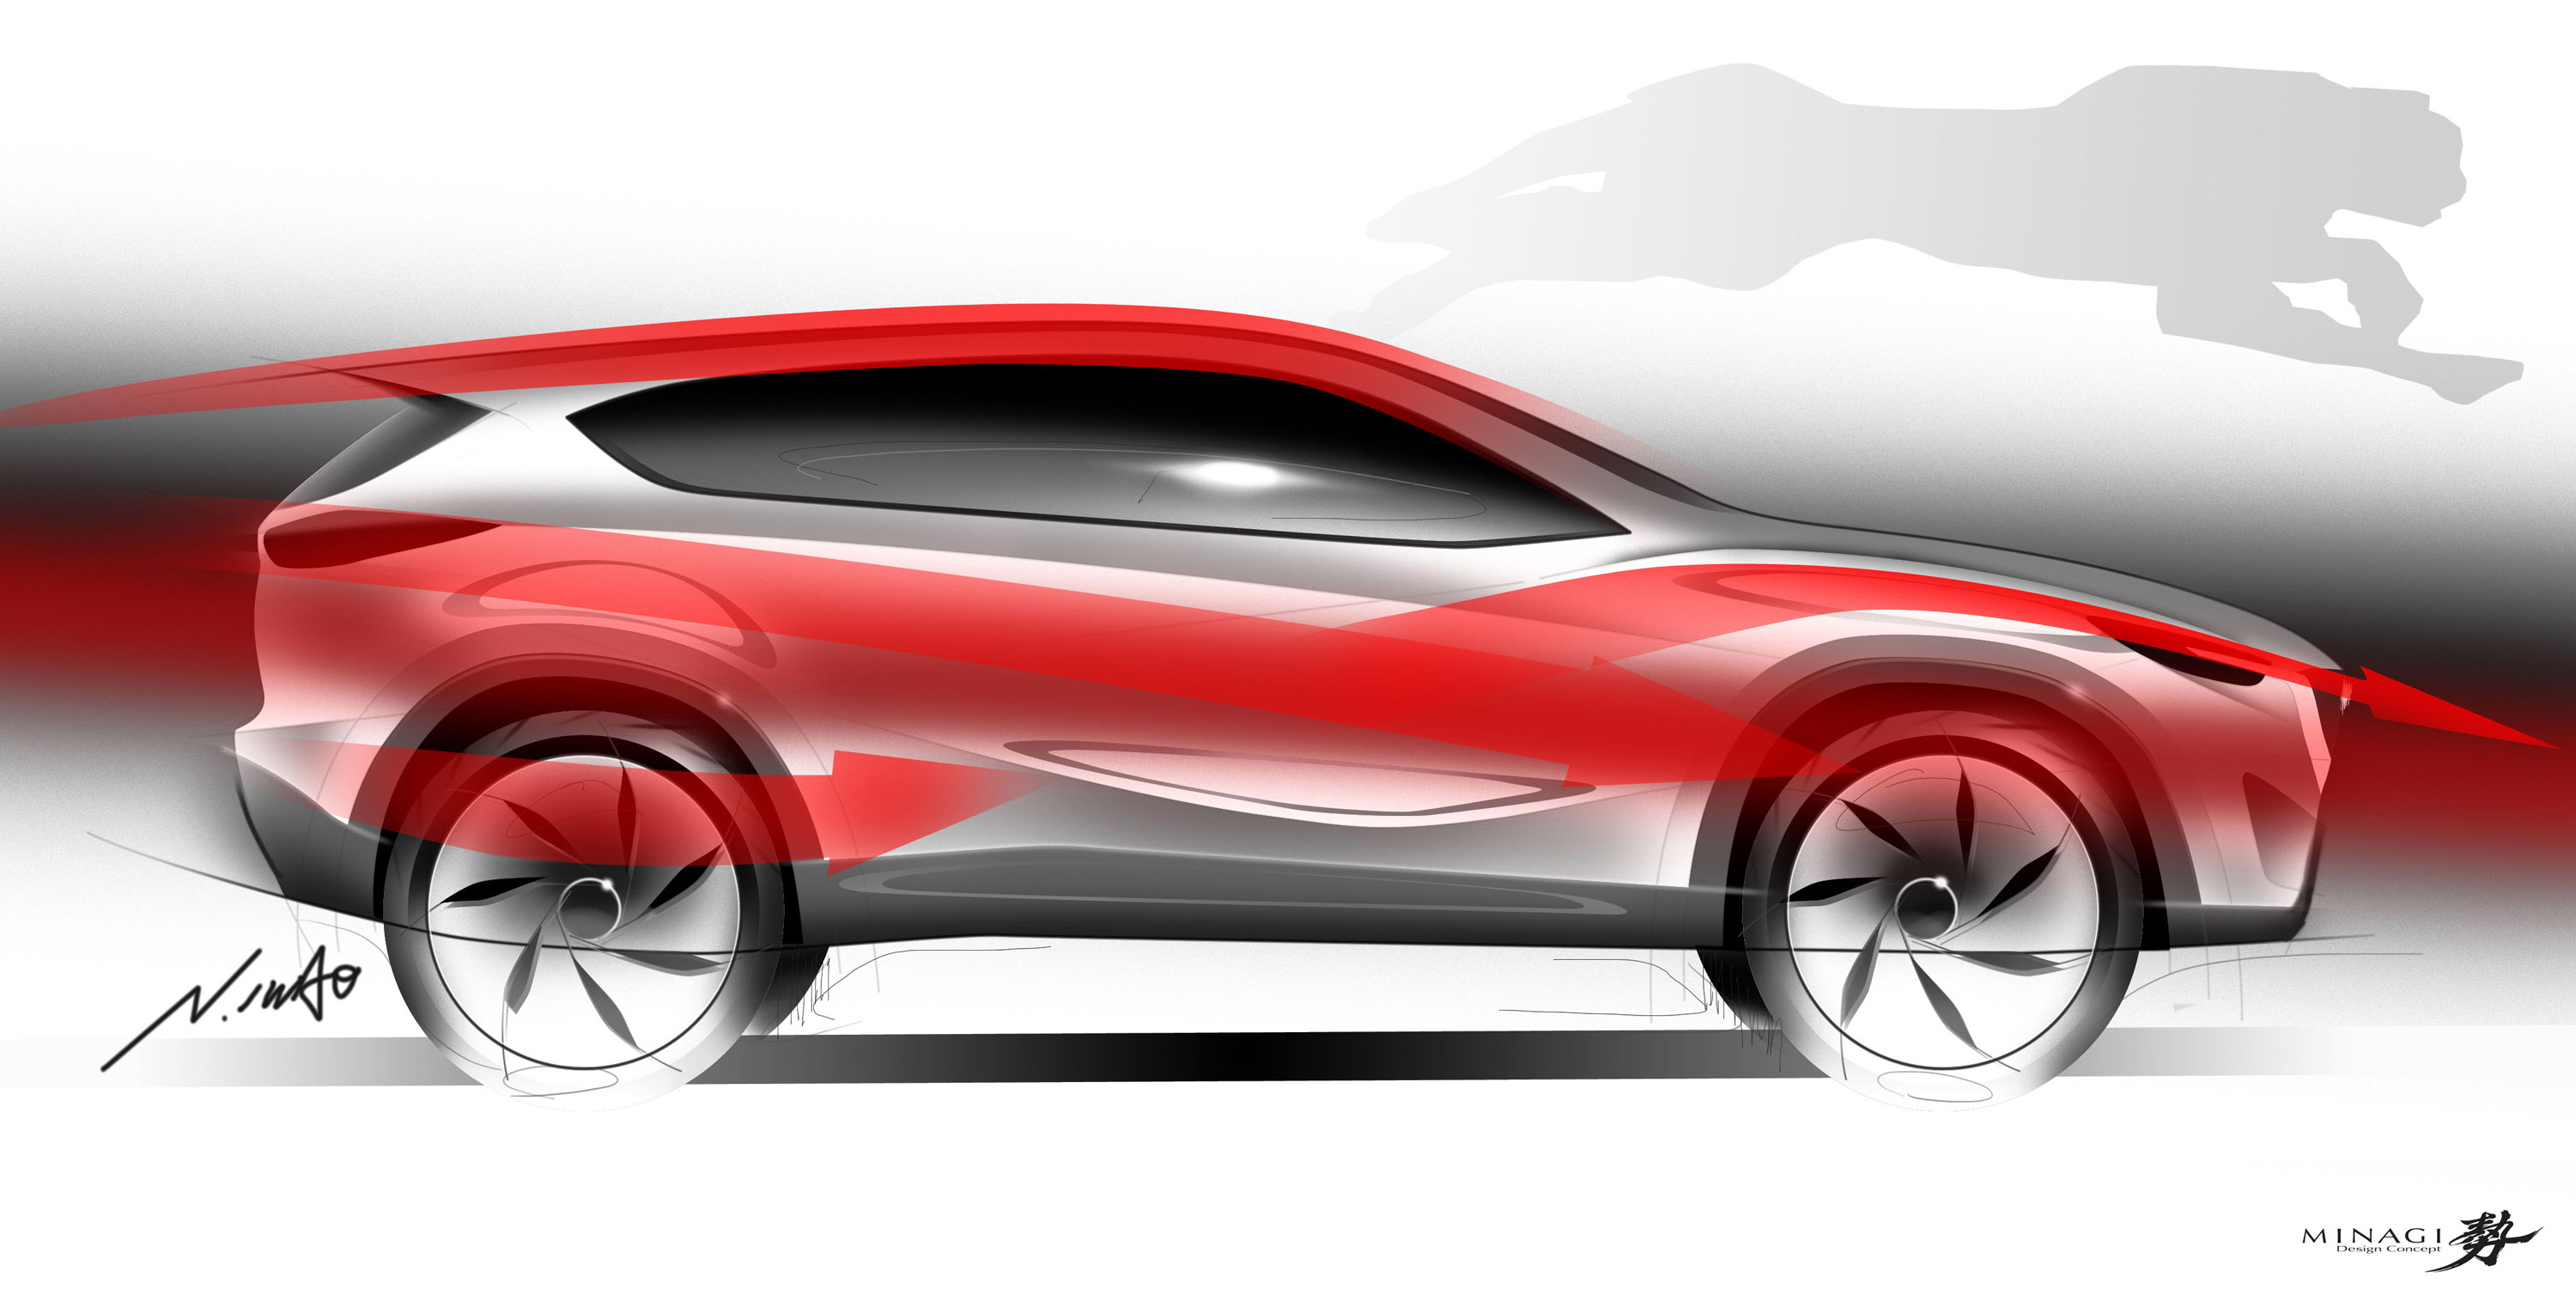 Mazda Minagi Concept Suv Art Drawing Sketch Wallpaper